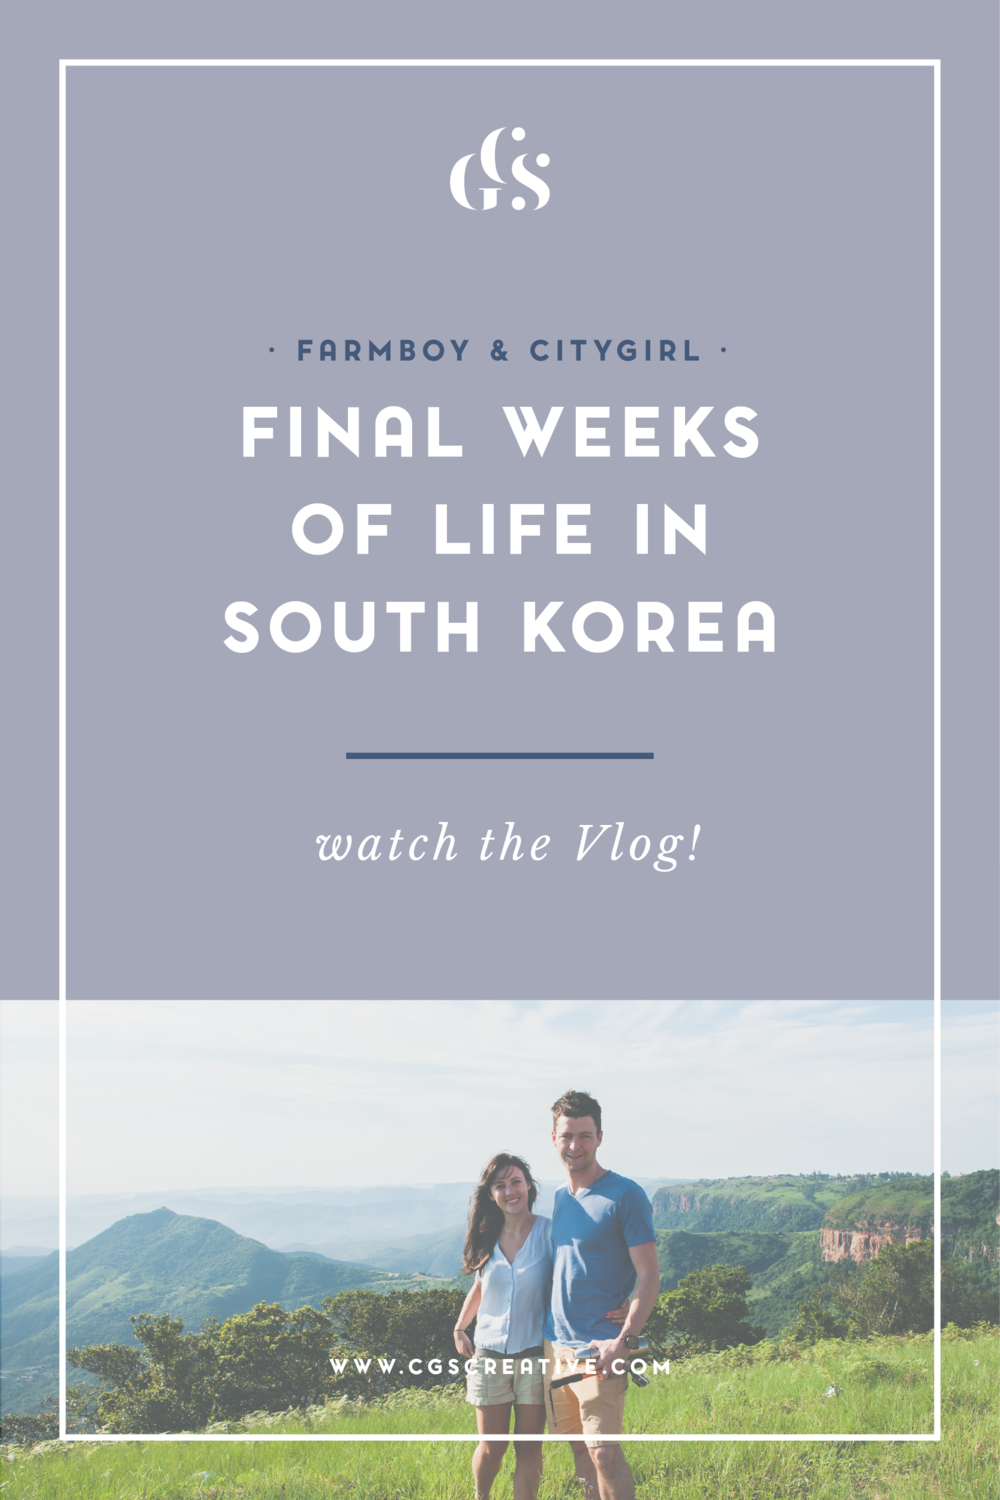 Our final few weeks in South Korea - A Daily Vlog by tincabin